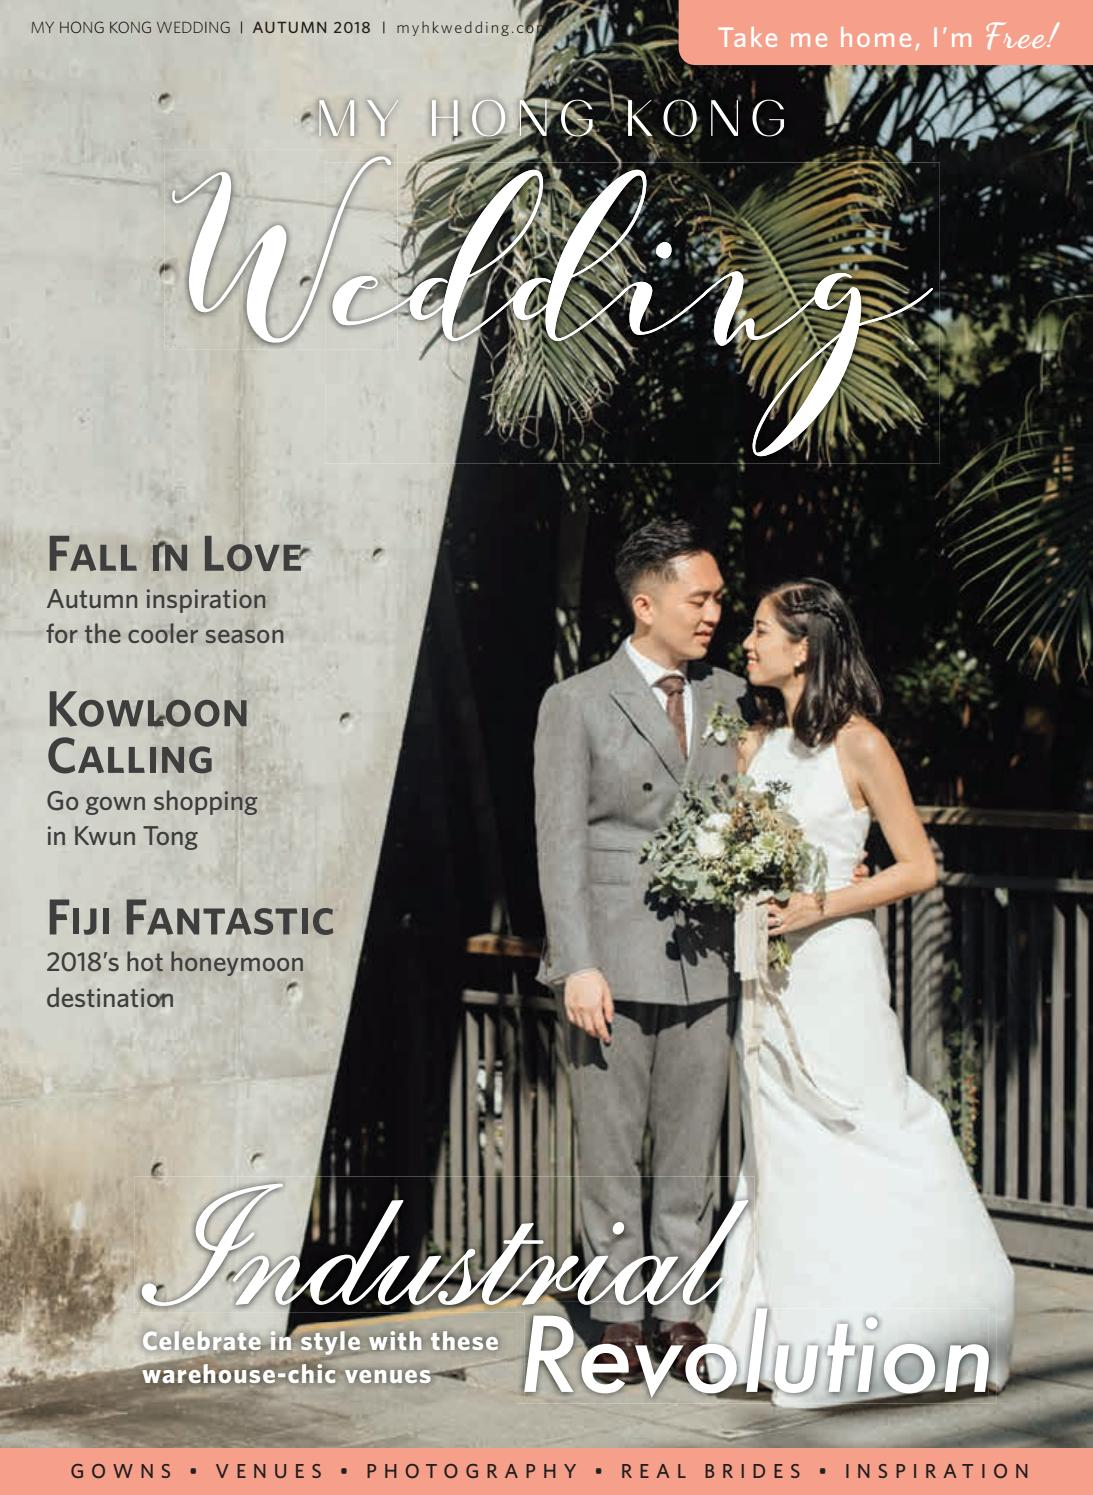 My Hong Kong Wedding September 2018 By Liv Media Limited Issuu,Wedding Dresses For Girls Short Frock